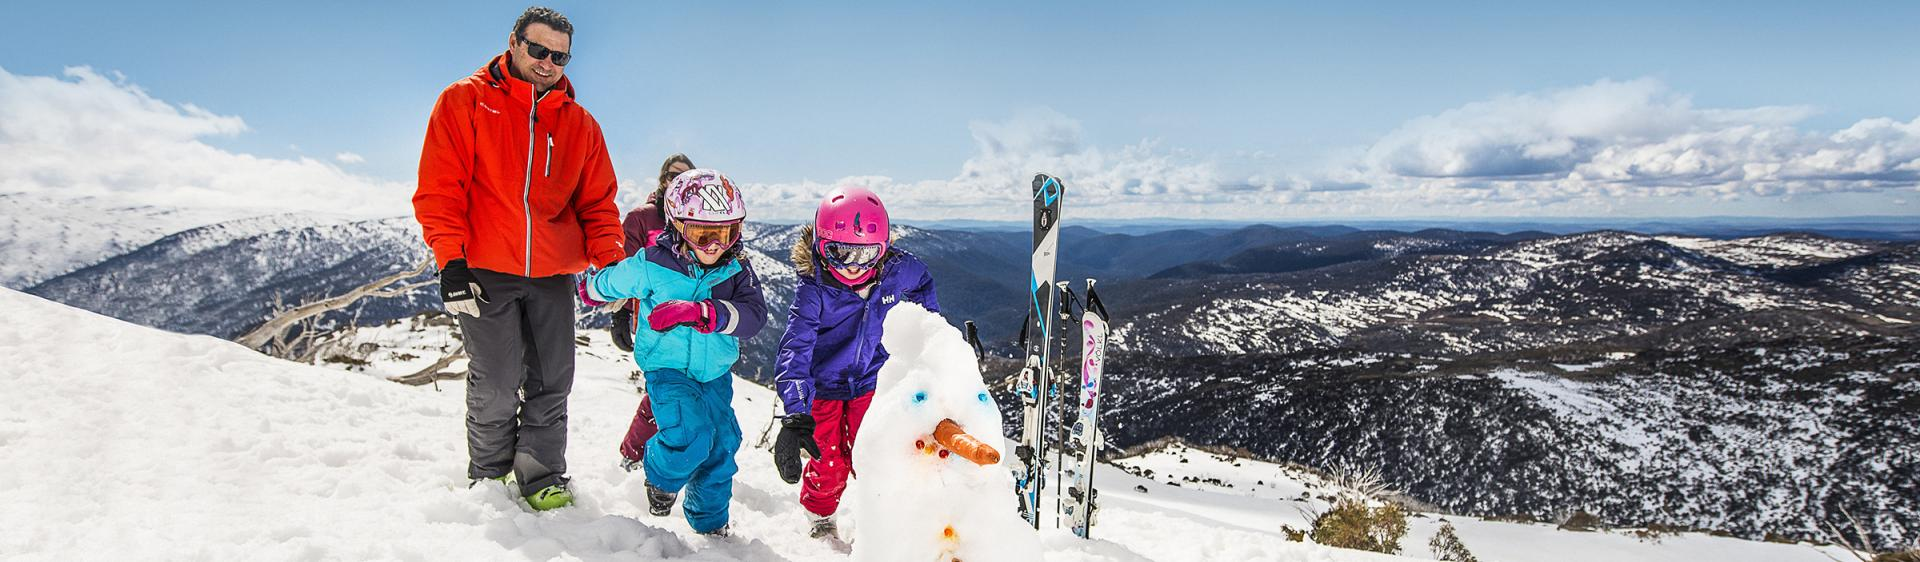 Family building a snowman at Perisher Ski Village in the Snowy Mountains after a day of skiing